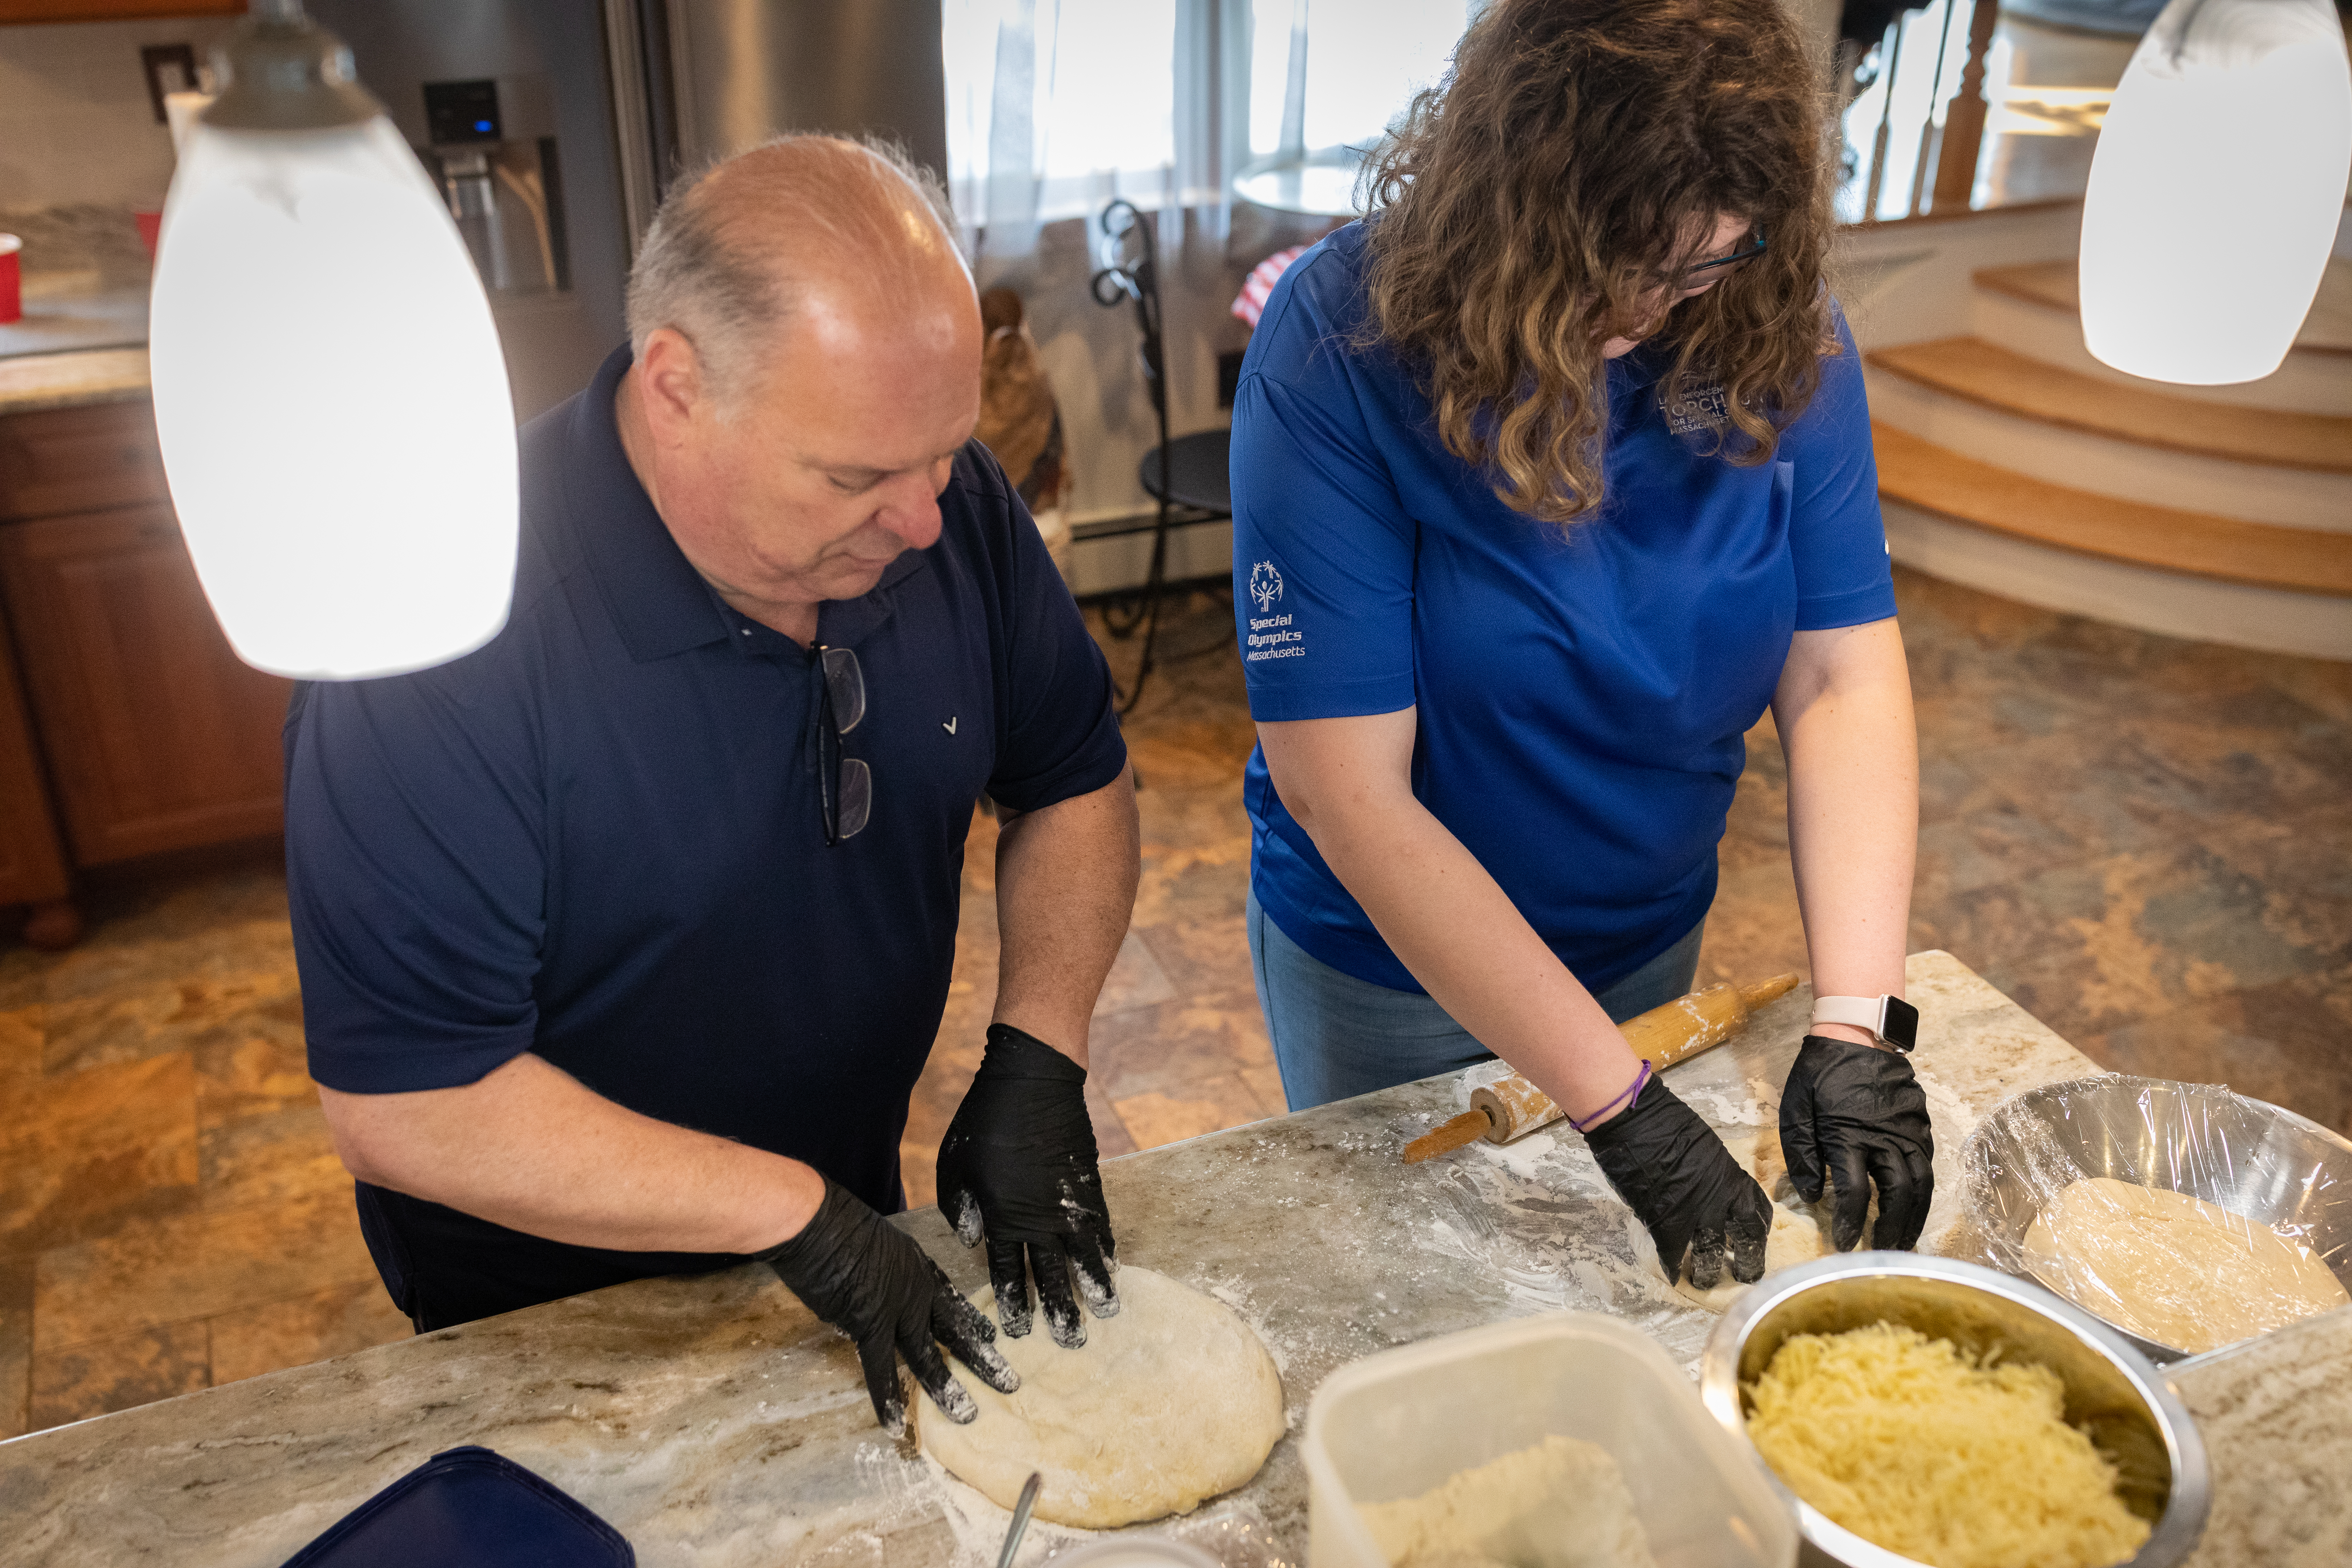 Meghan Colby, a Special Olympics athlete, forms pizza dough into a pie alongside retired Middleton Police Chief Jim DiGianvittorio during a live-streamed pizza cooking tutorial.